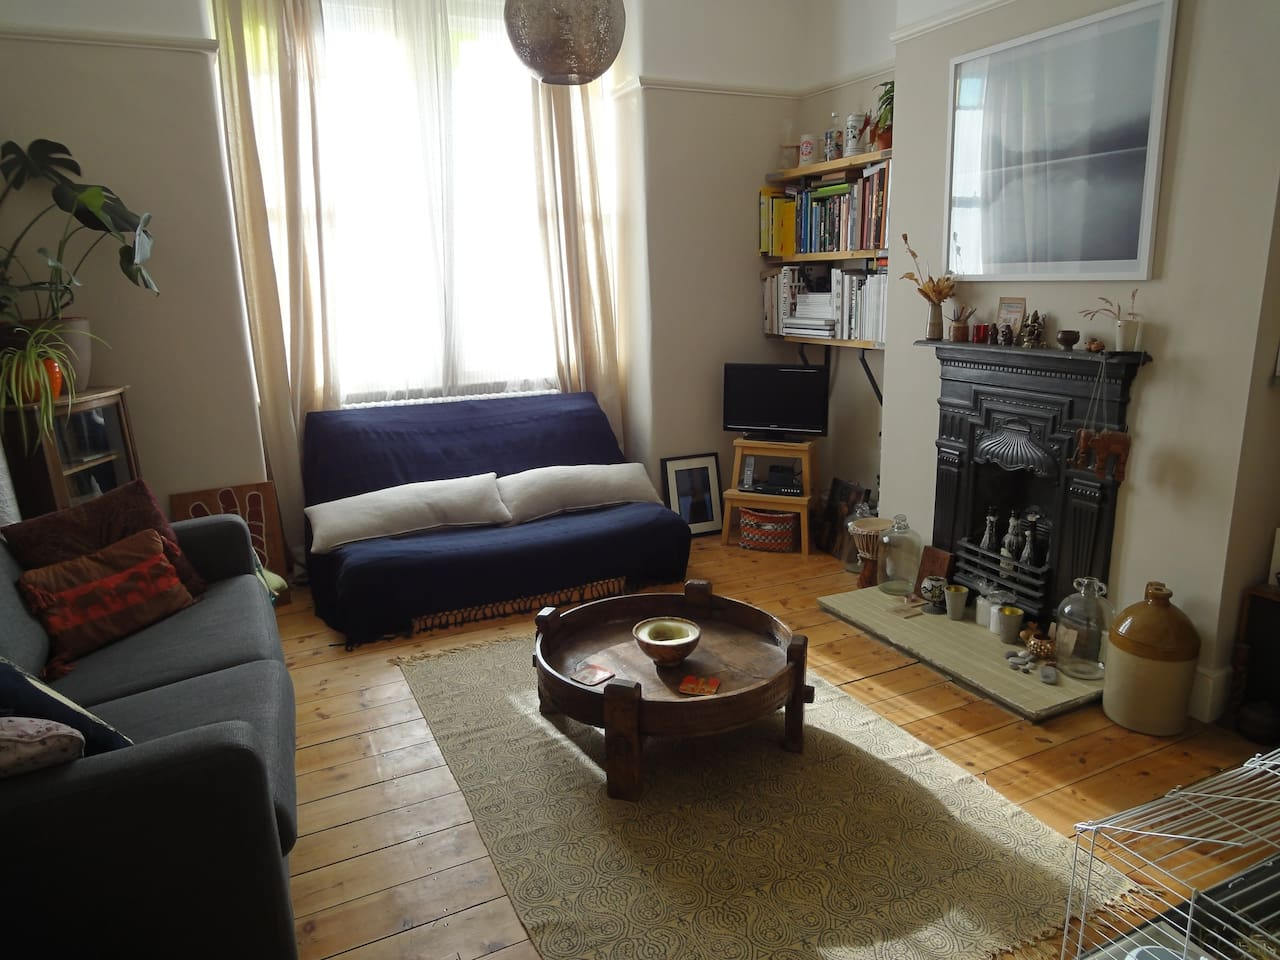 Our living room with period features including fireplace and original sash windows (with stained glass!). Lots of books for you to peruse.